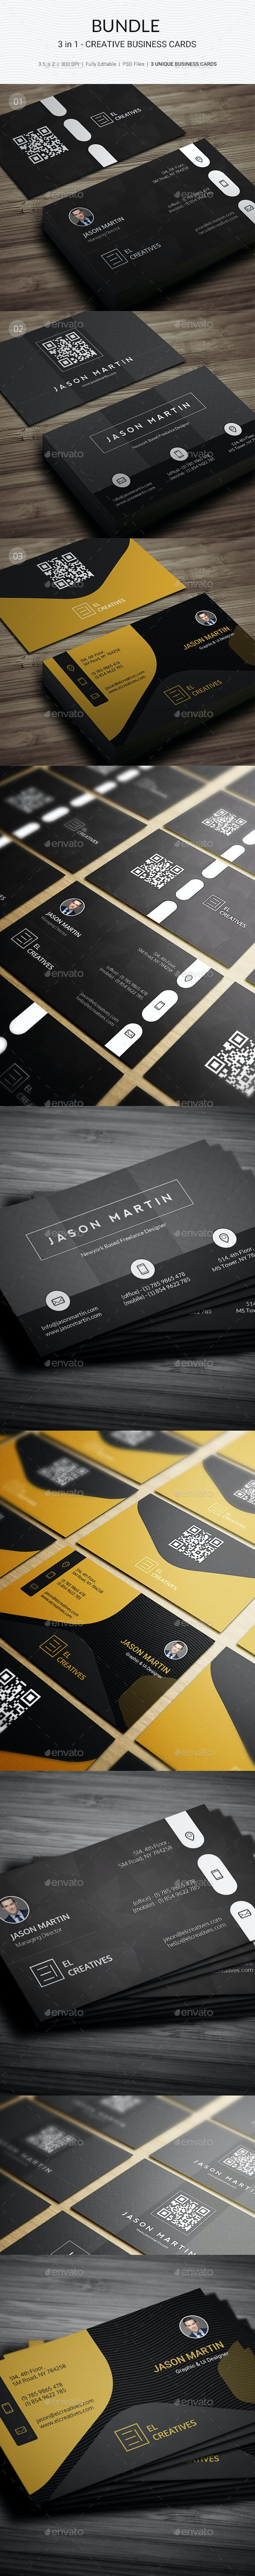 Bundle - 3 in 1 - Creative Business Cards - 180 - Creative Business Cards